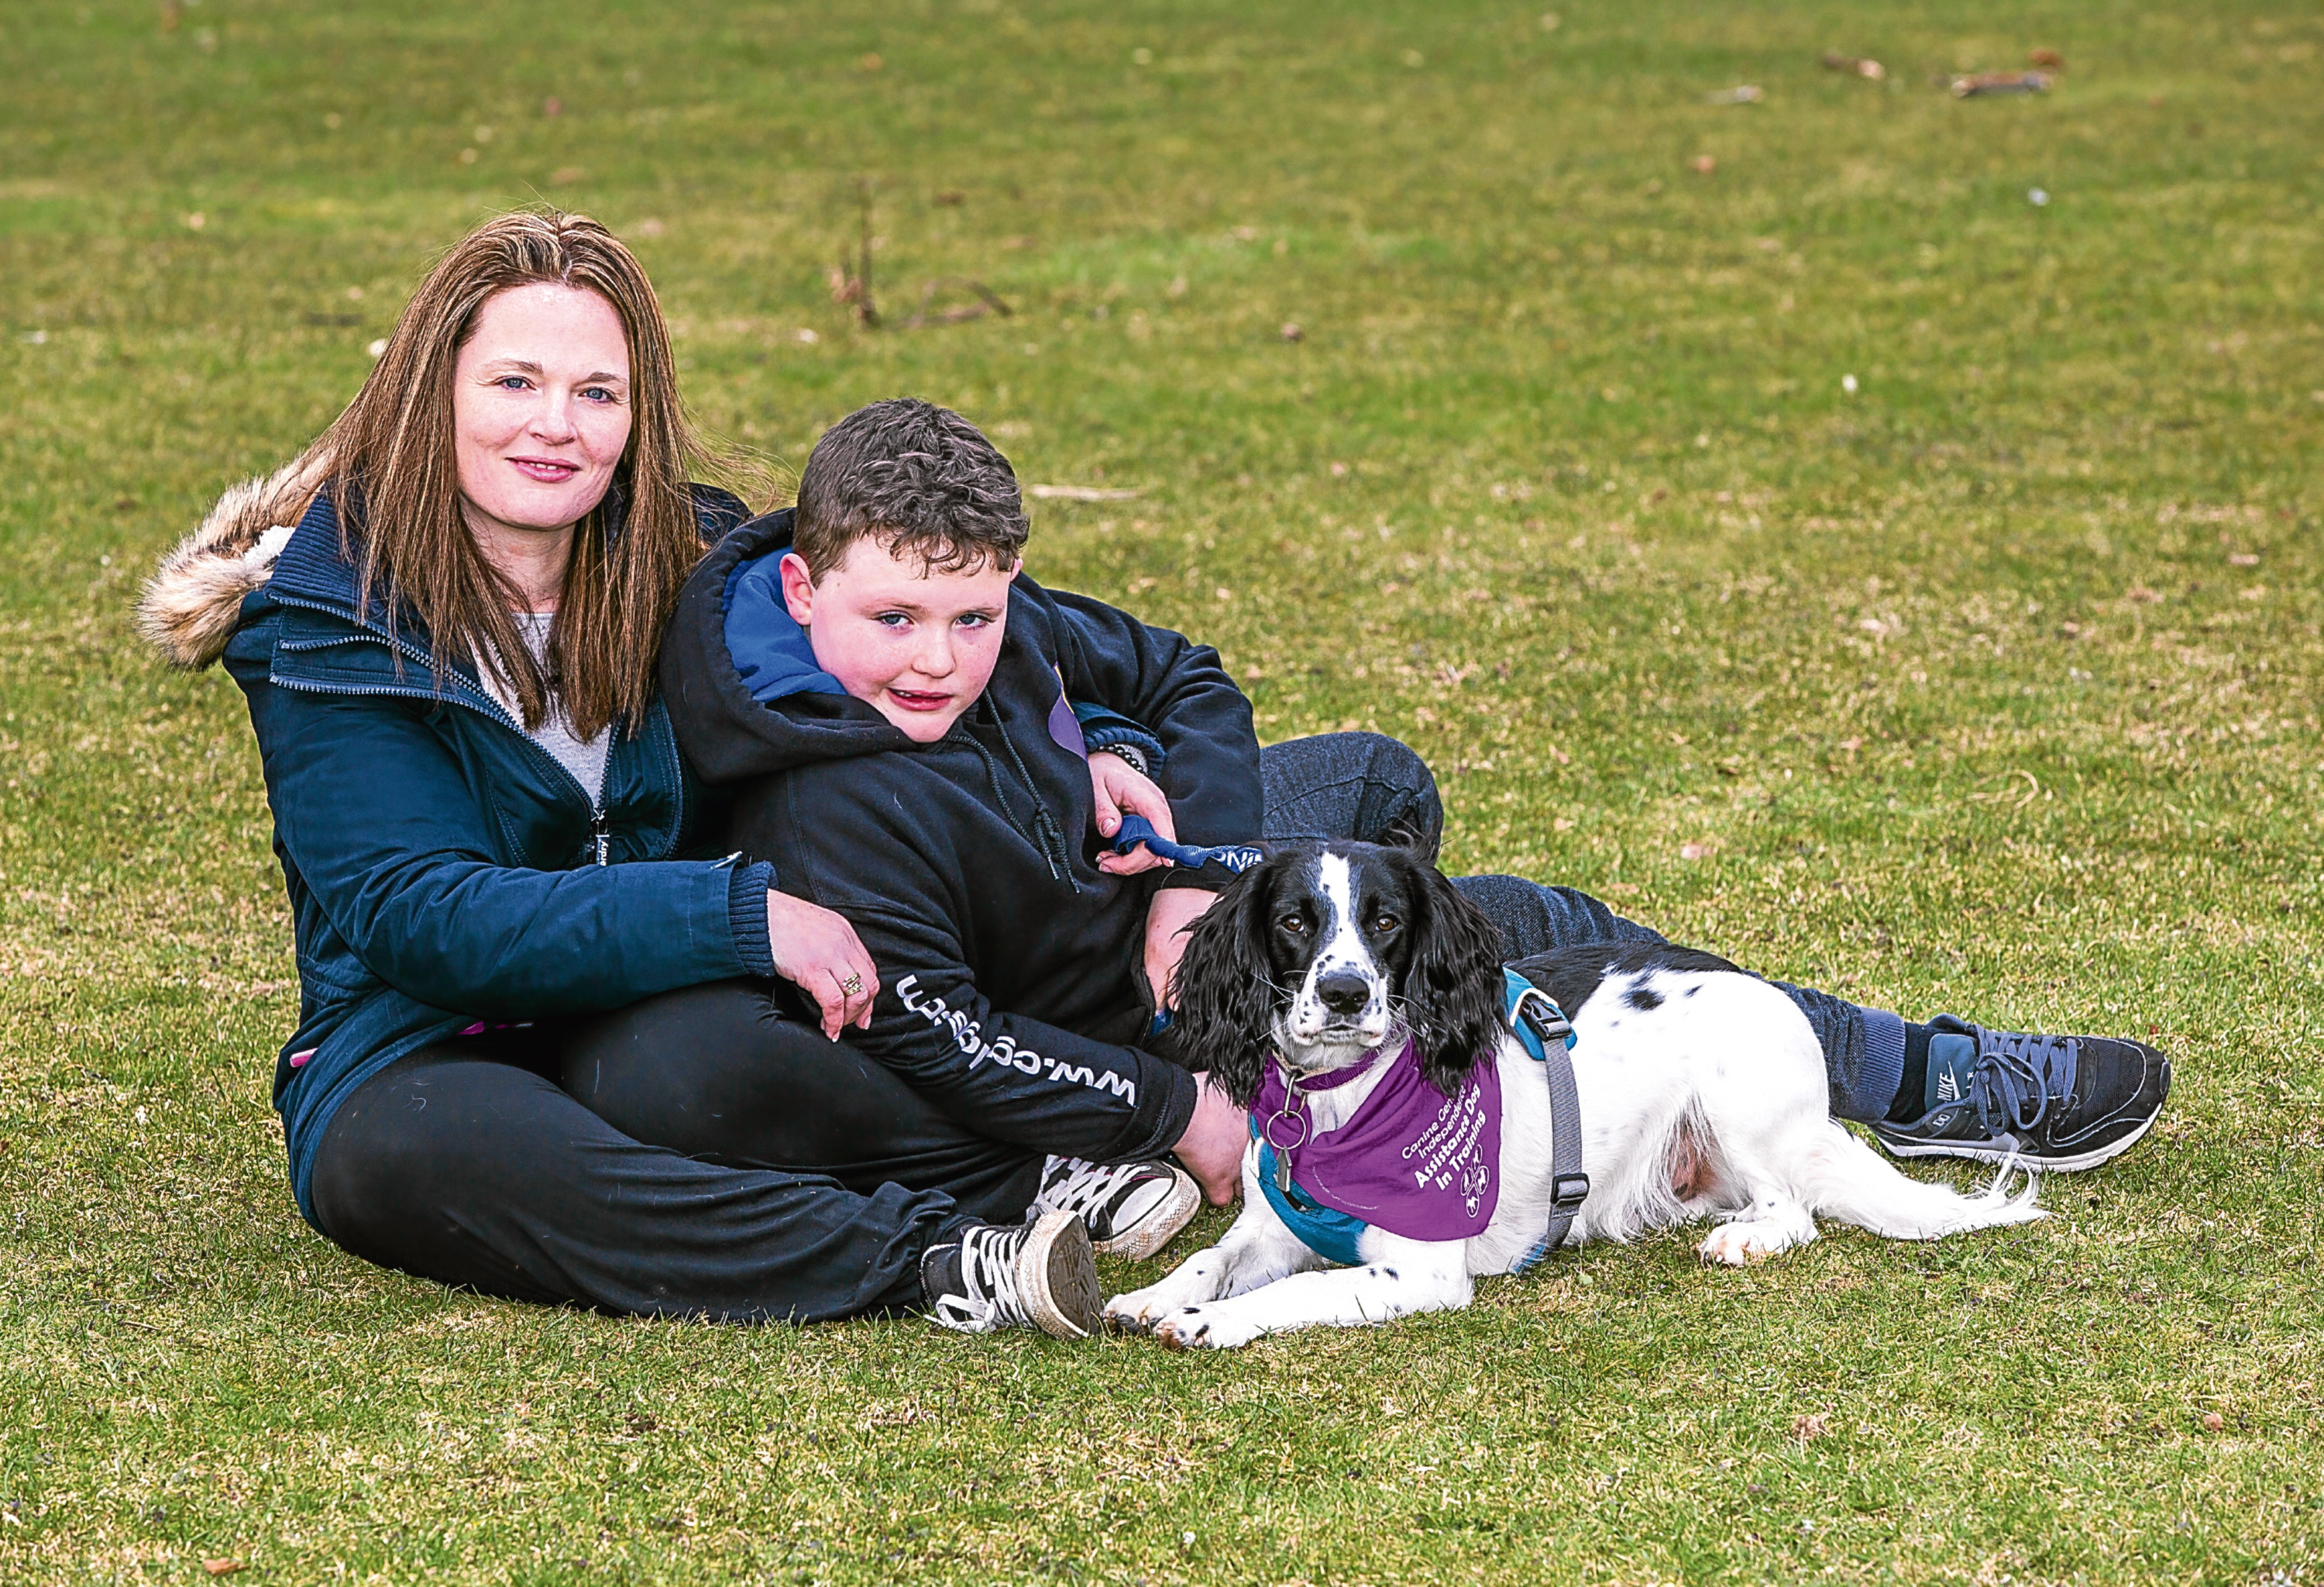 Stuart Moir from Alford, Aberdeenshire with mum Lisa and dog Jess. (Simon Price/Firstpix)